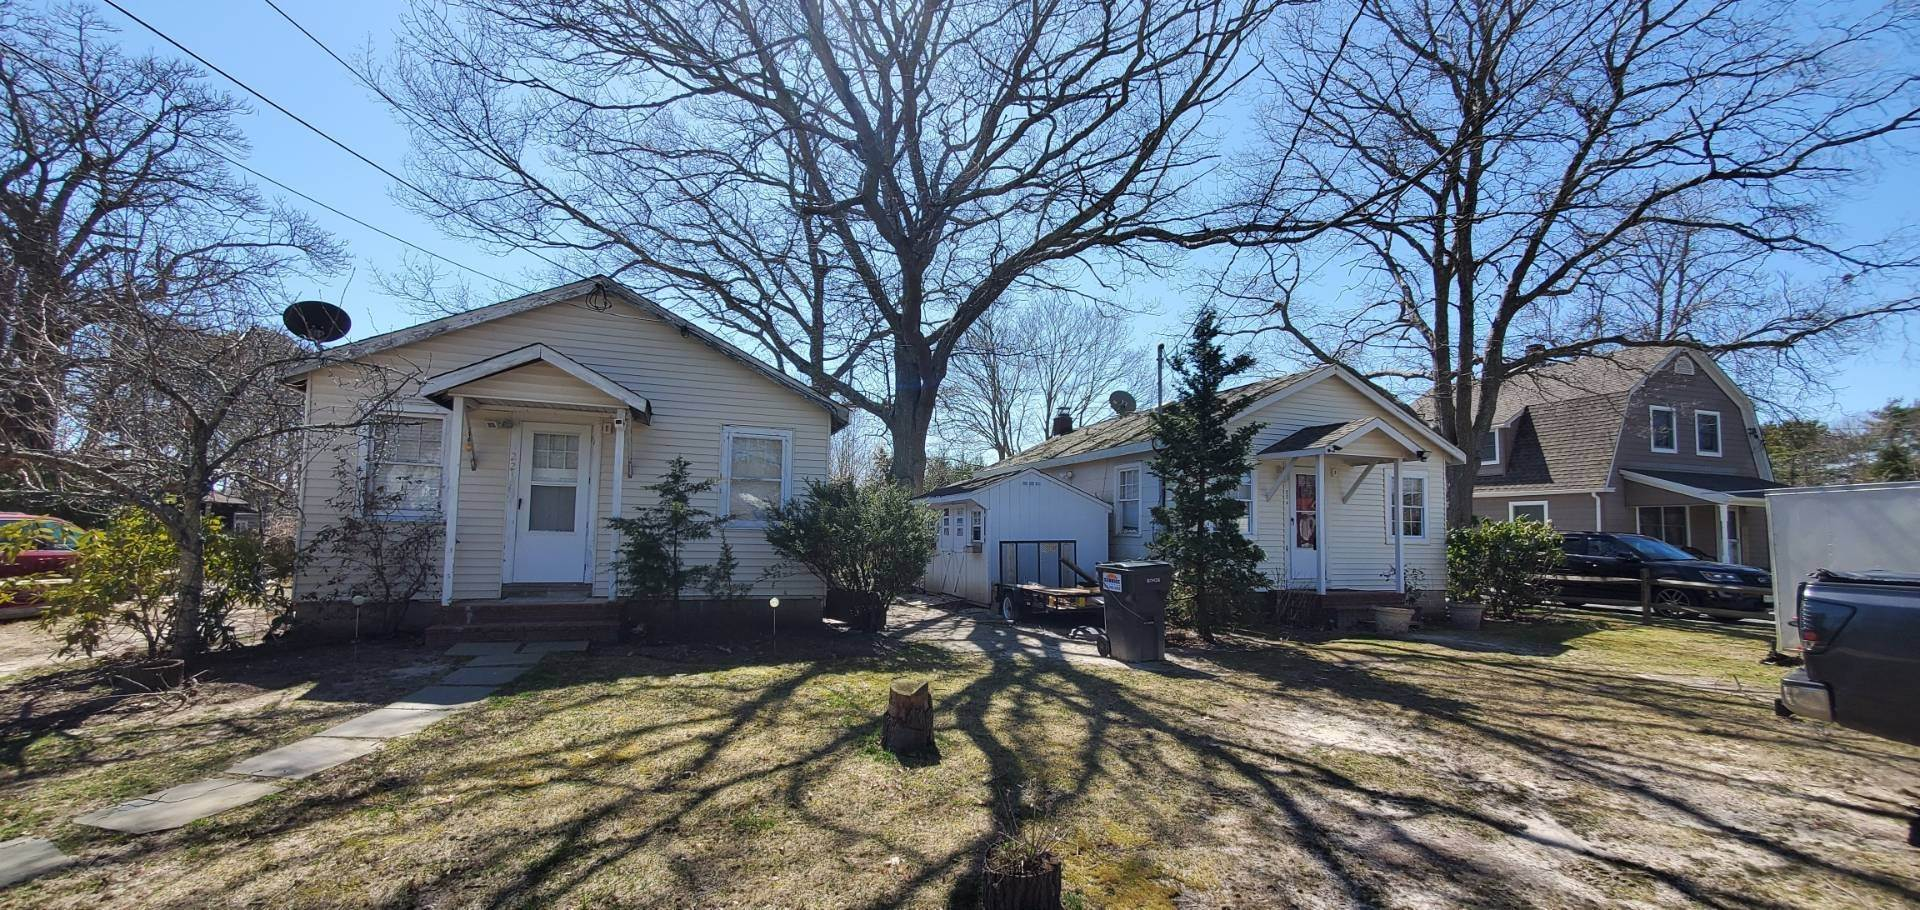 Single Family Home for Sale at Income Producing Property In E. Quogue & Subdivision Opportunity 22 Vail Avenue, East Quogue, NY 11942